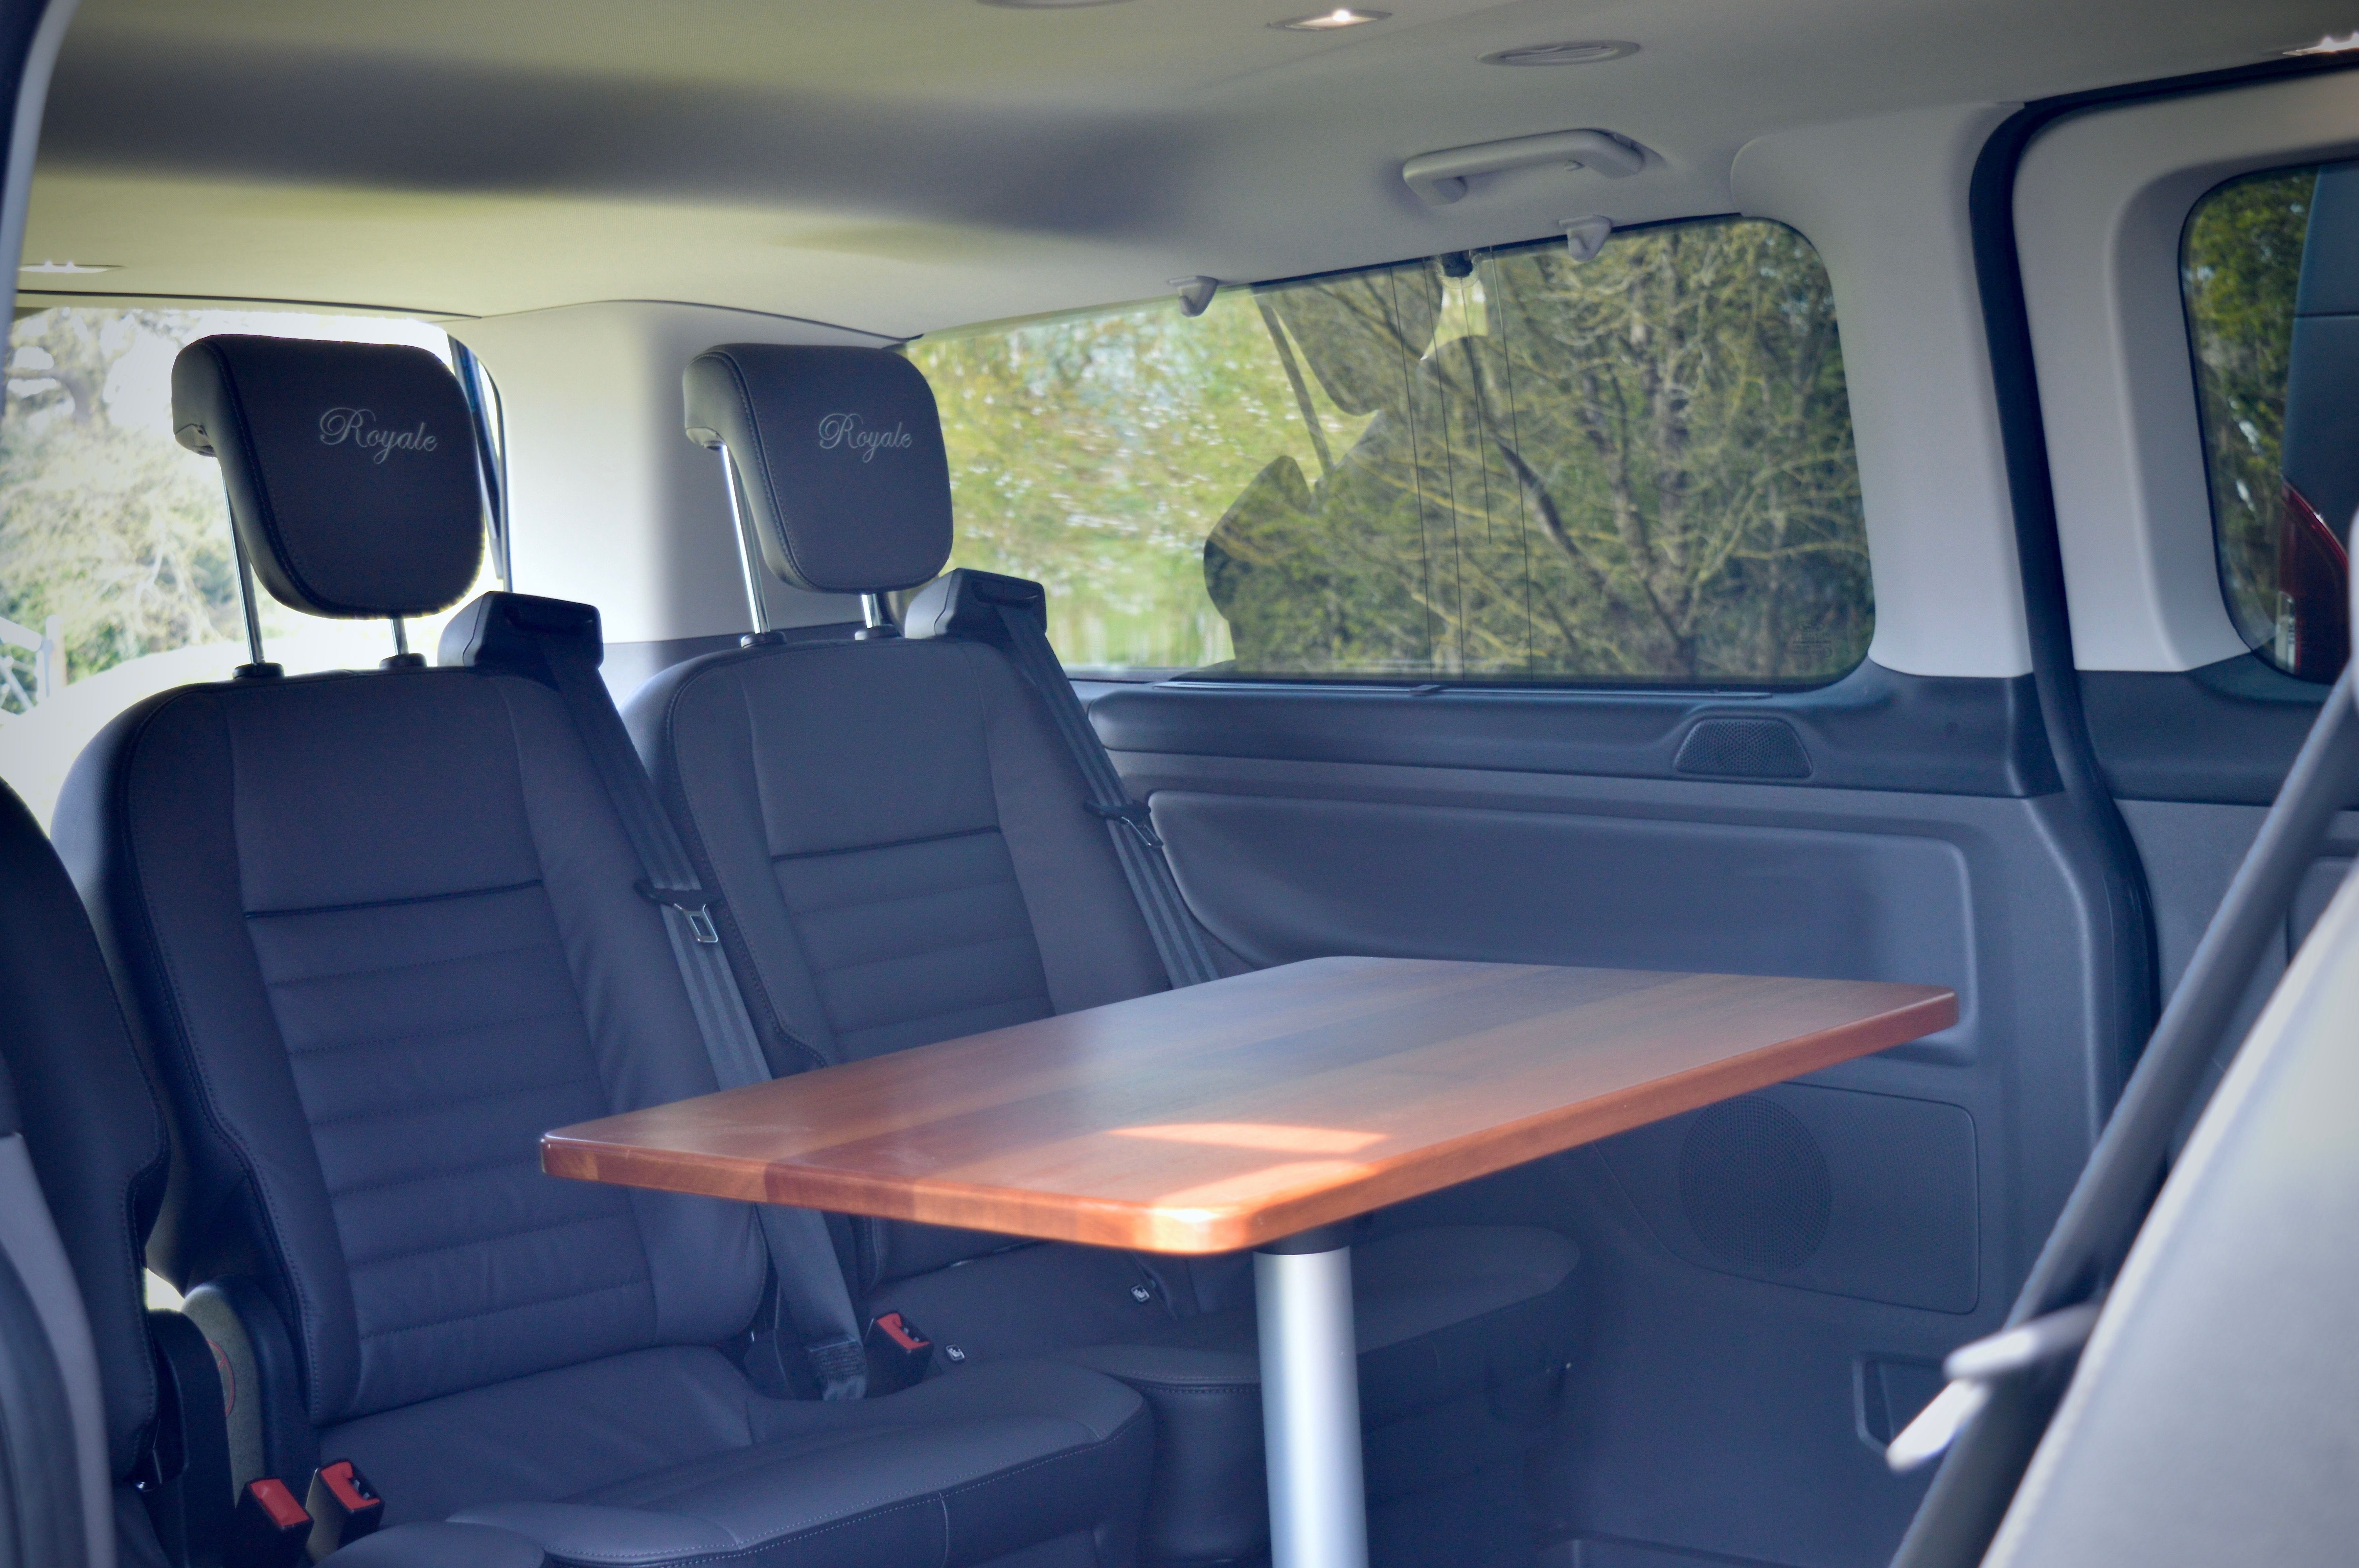 The inside view of the taxi showing the leather seats surrounding the table